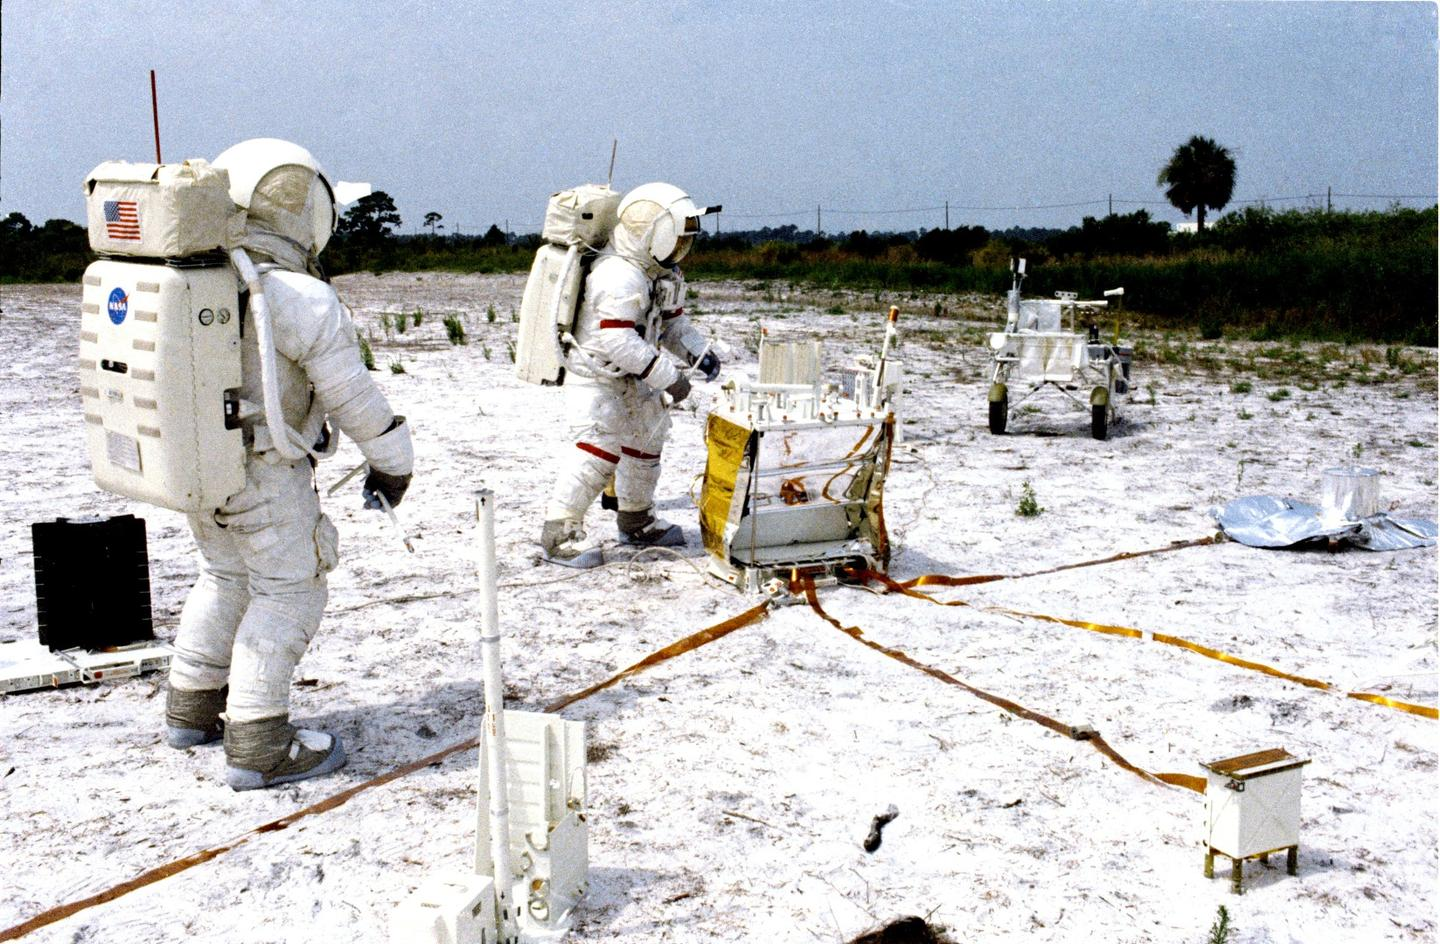 Shepard and Mitchell training on Earth for the Apollo 14 mission